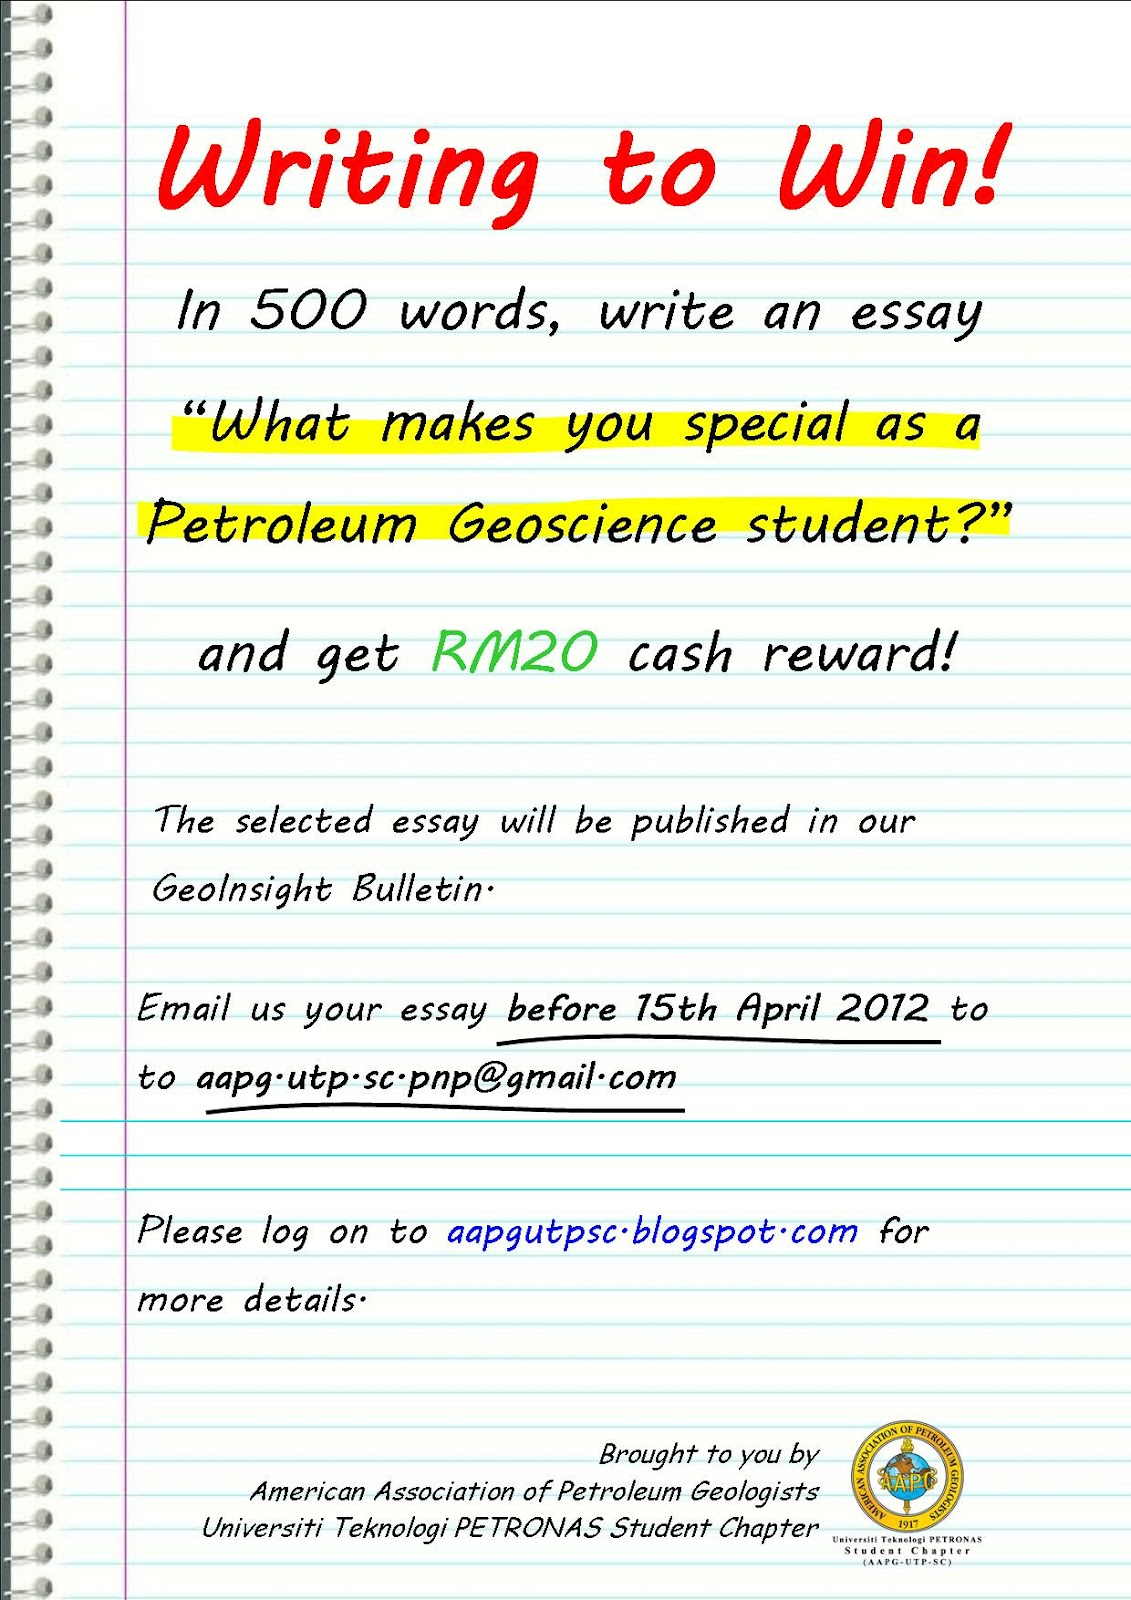 Essay writing website contest guidelines